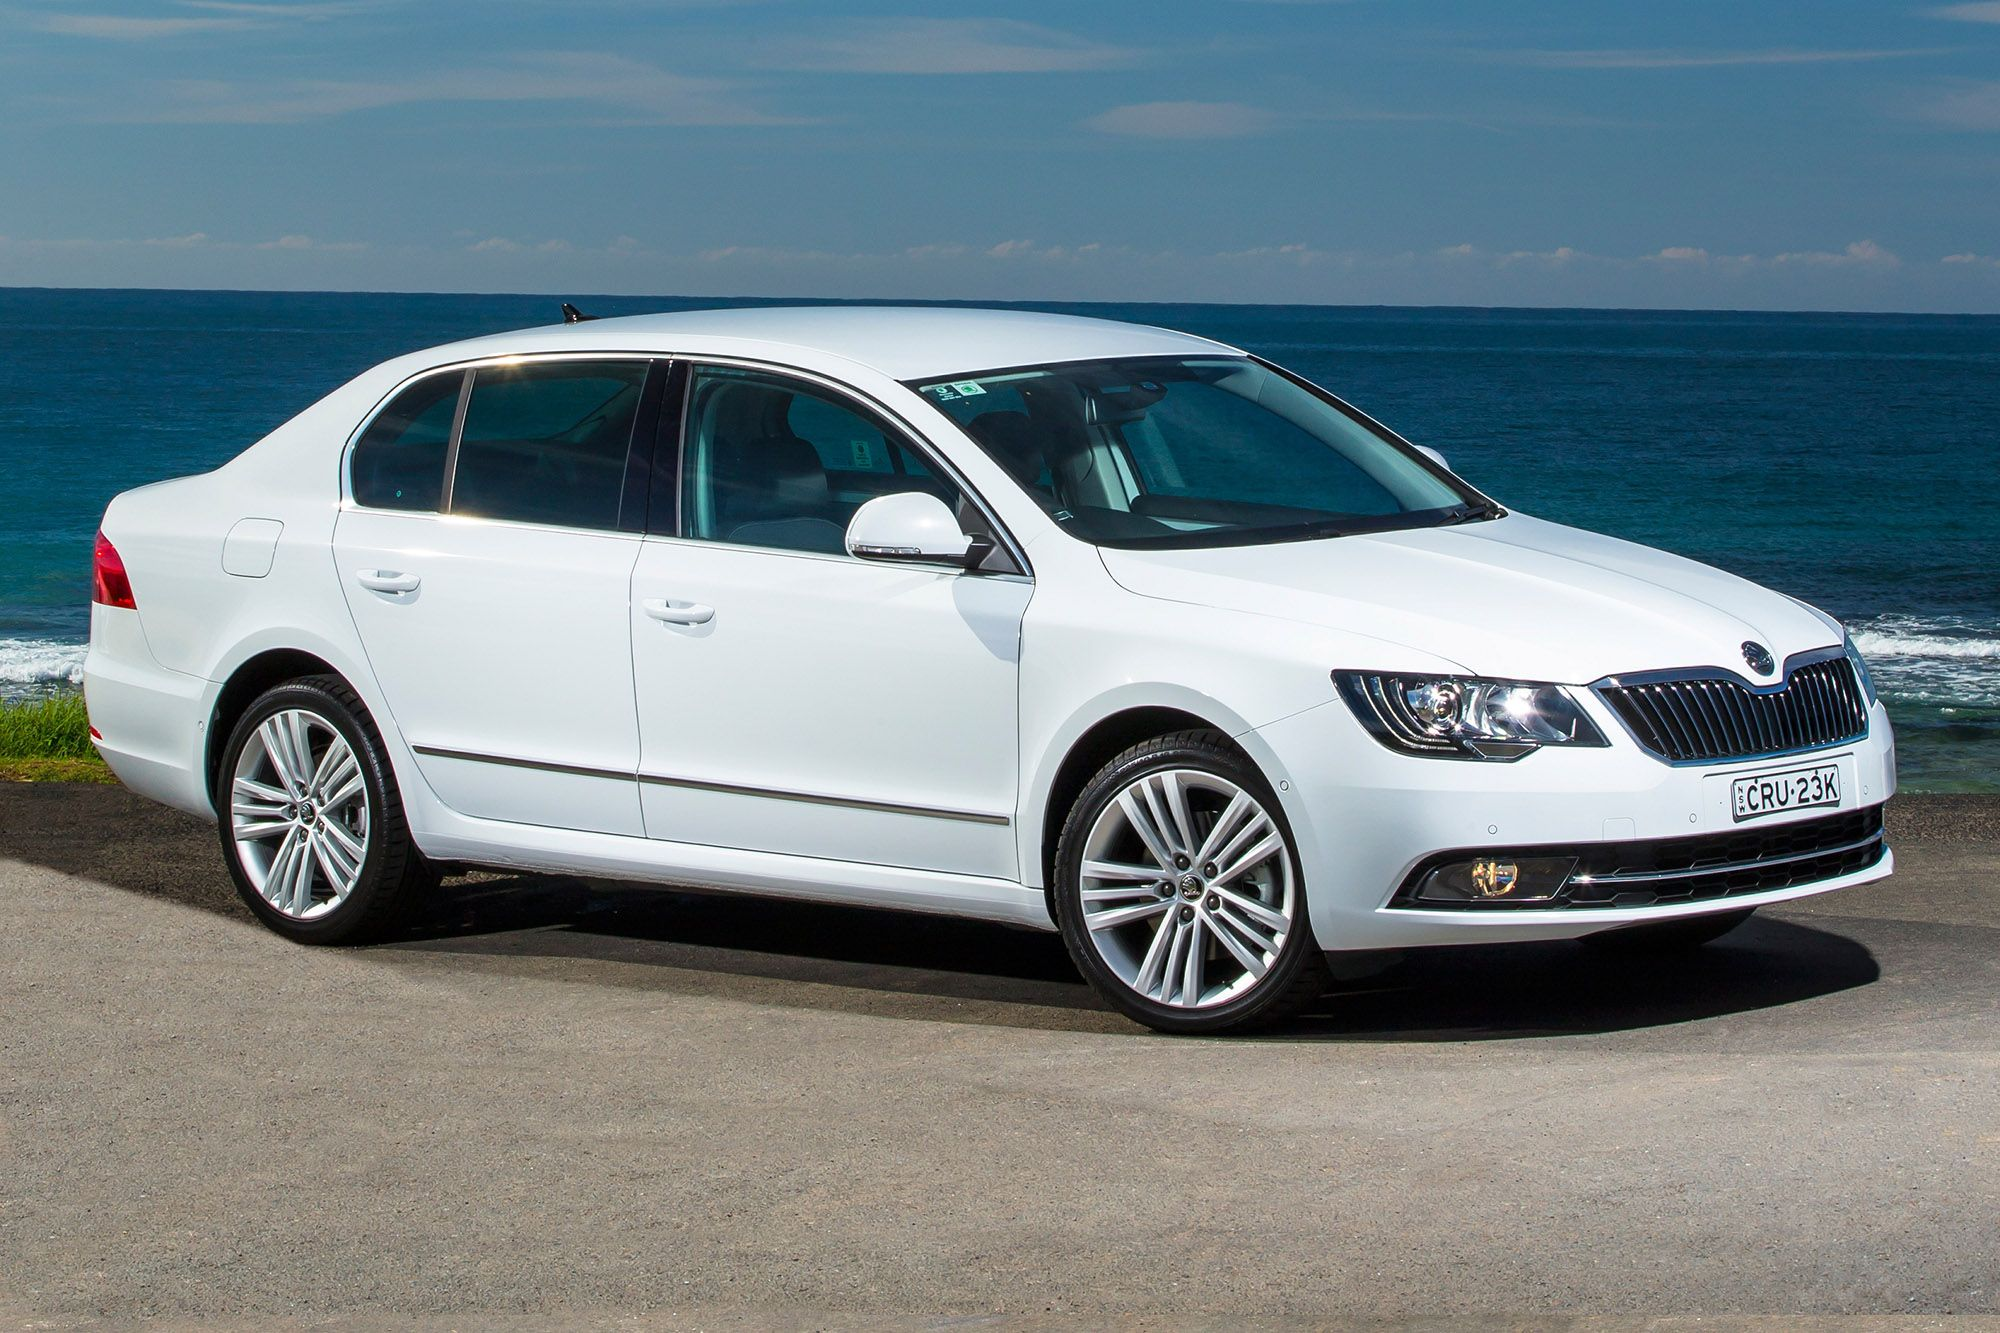 2014 Skoda Superb Pricing And Specifications Skoda Superb Skoda